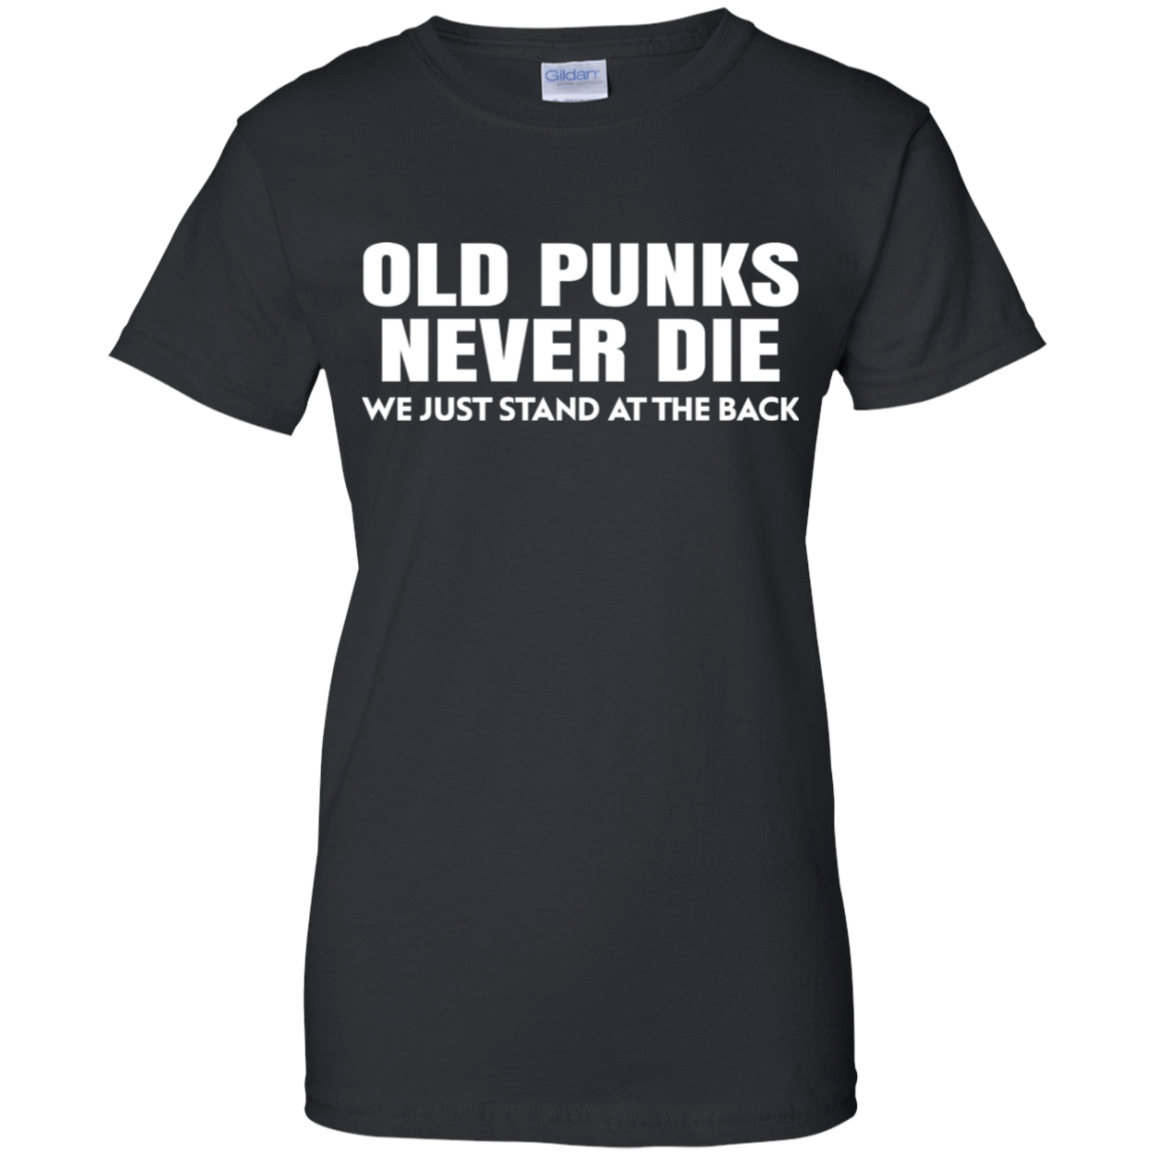 Old Punks Never Die We Just Stand At The Back 939-9248-73420976-44695 - Tee Ript